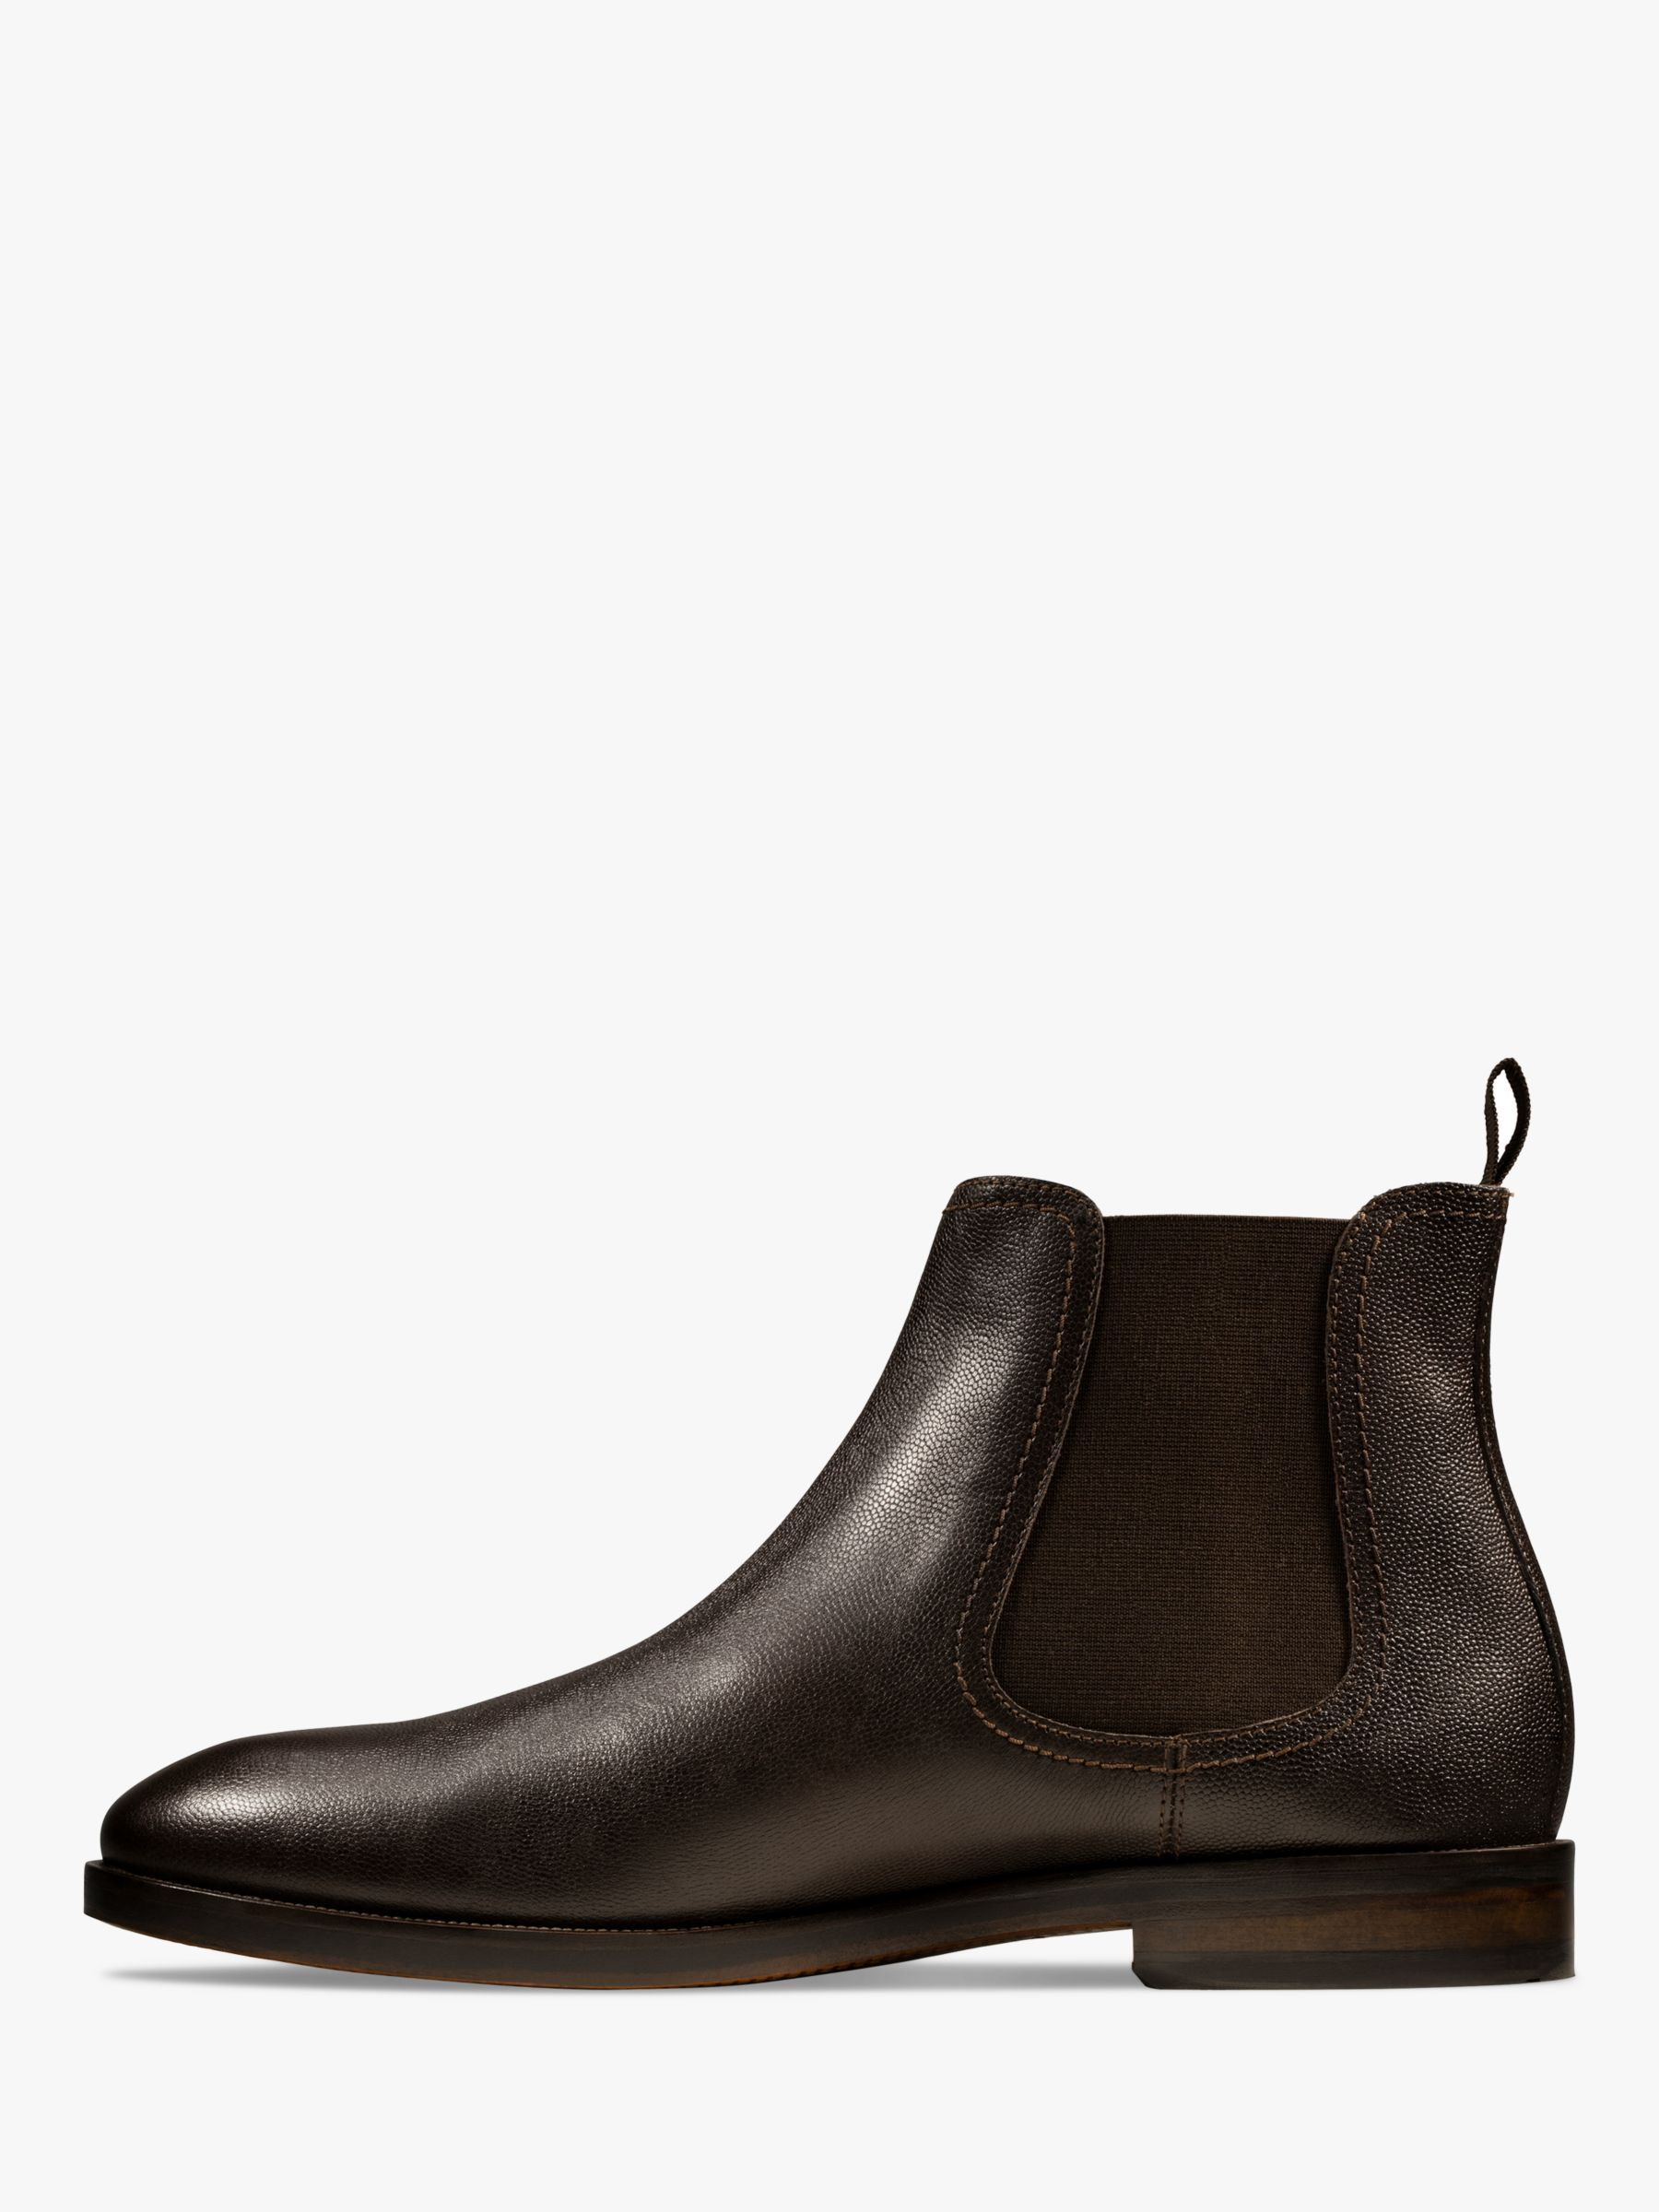 wide varieties purchase cheap shopping Clarks Oliver Top Chelsea Boots | Chelsea boots, Boots, Chelsea